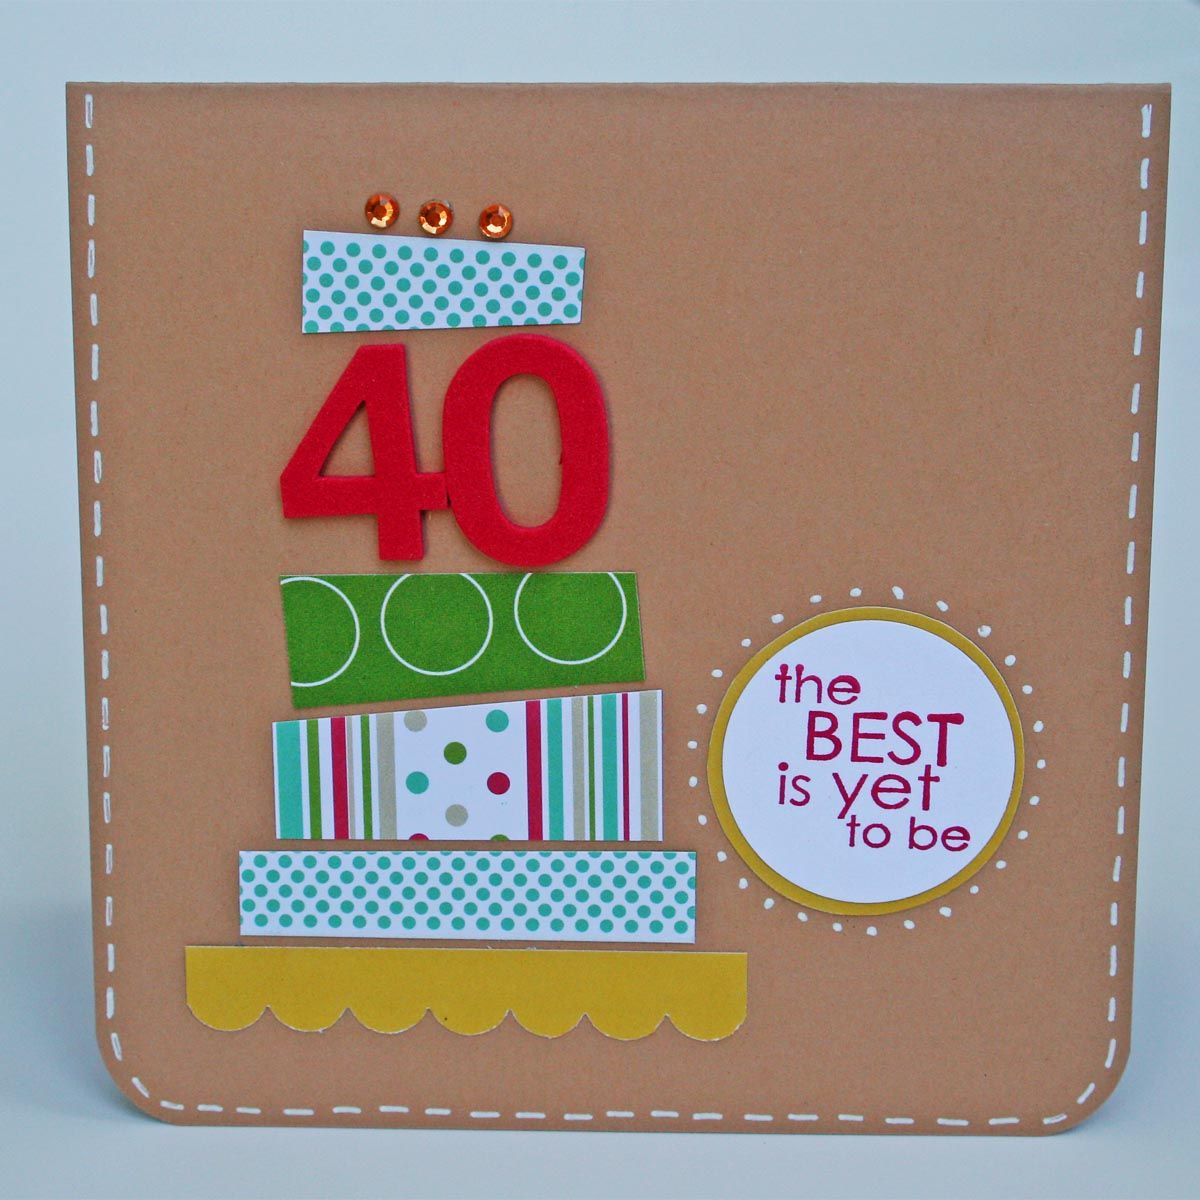 Happy Birthday Women Employed Can T Wait To See What You Do In The Next 40 Years 40th Birthday Cards Birthday Cards Diy 40th Birthday Card